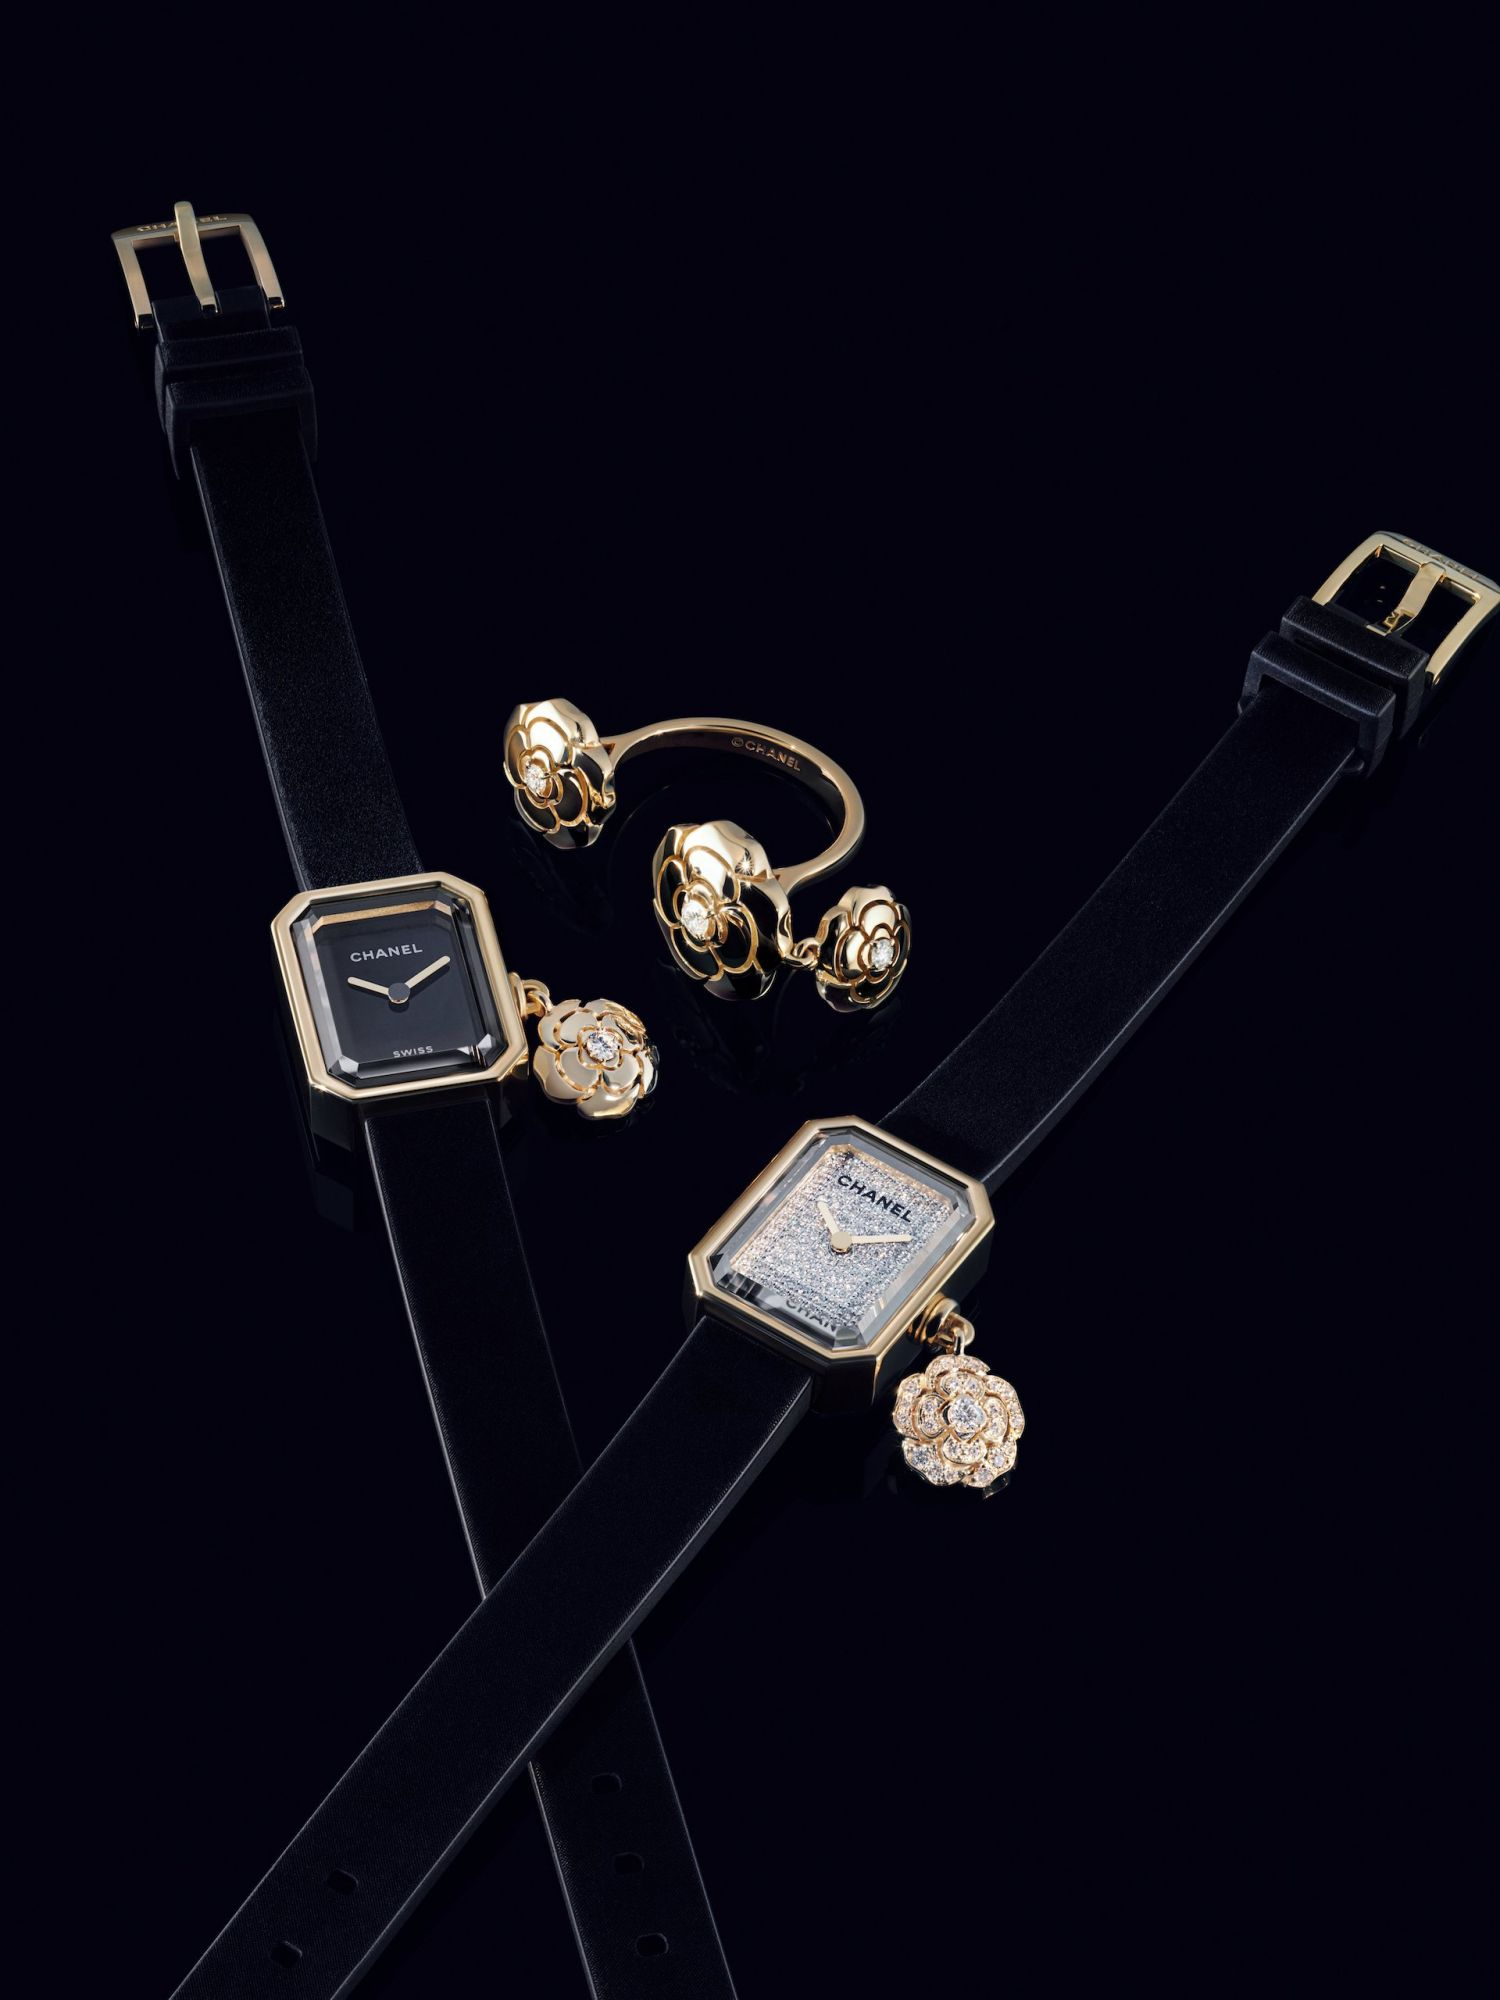 Chanel's New Extrait De Camélia Watch is Inspired by a Special Motif